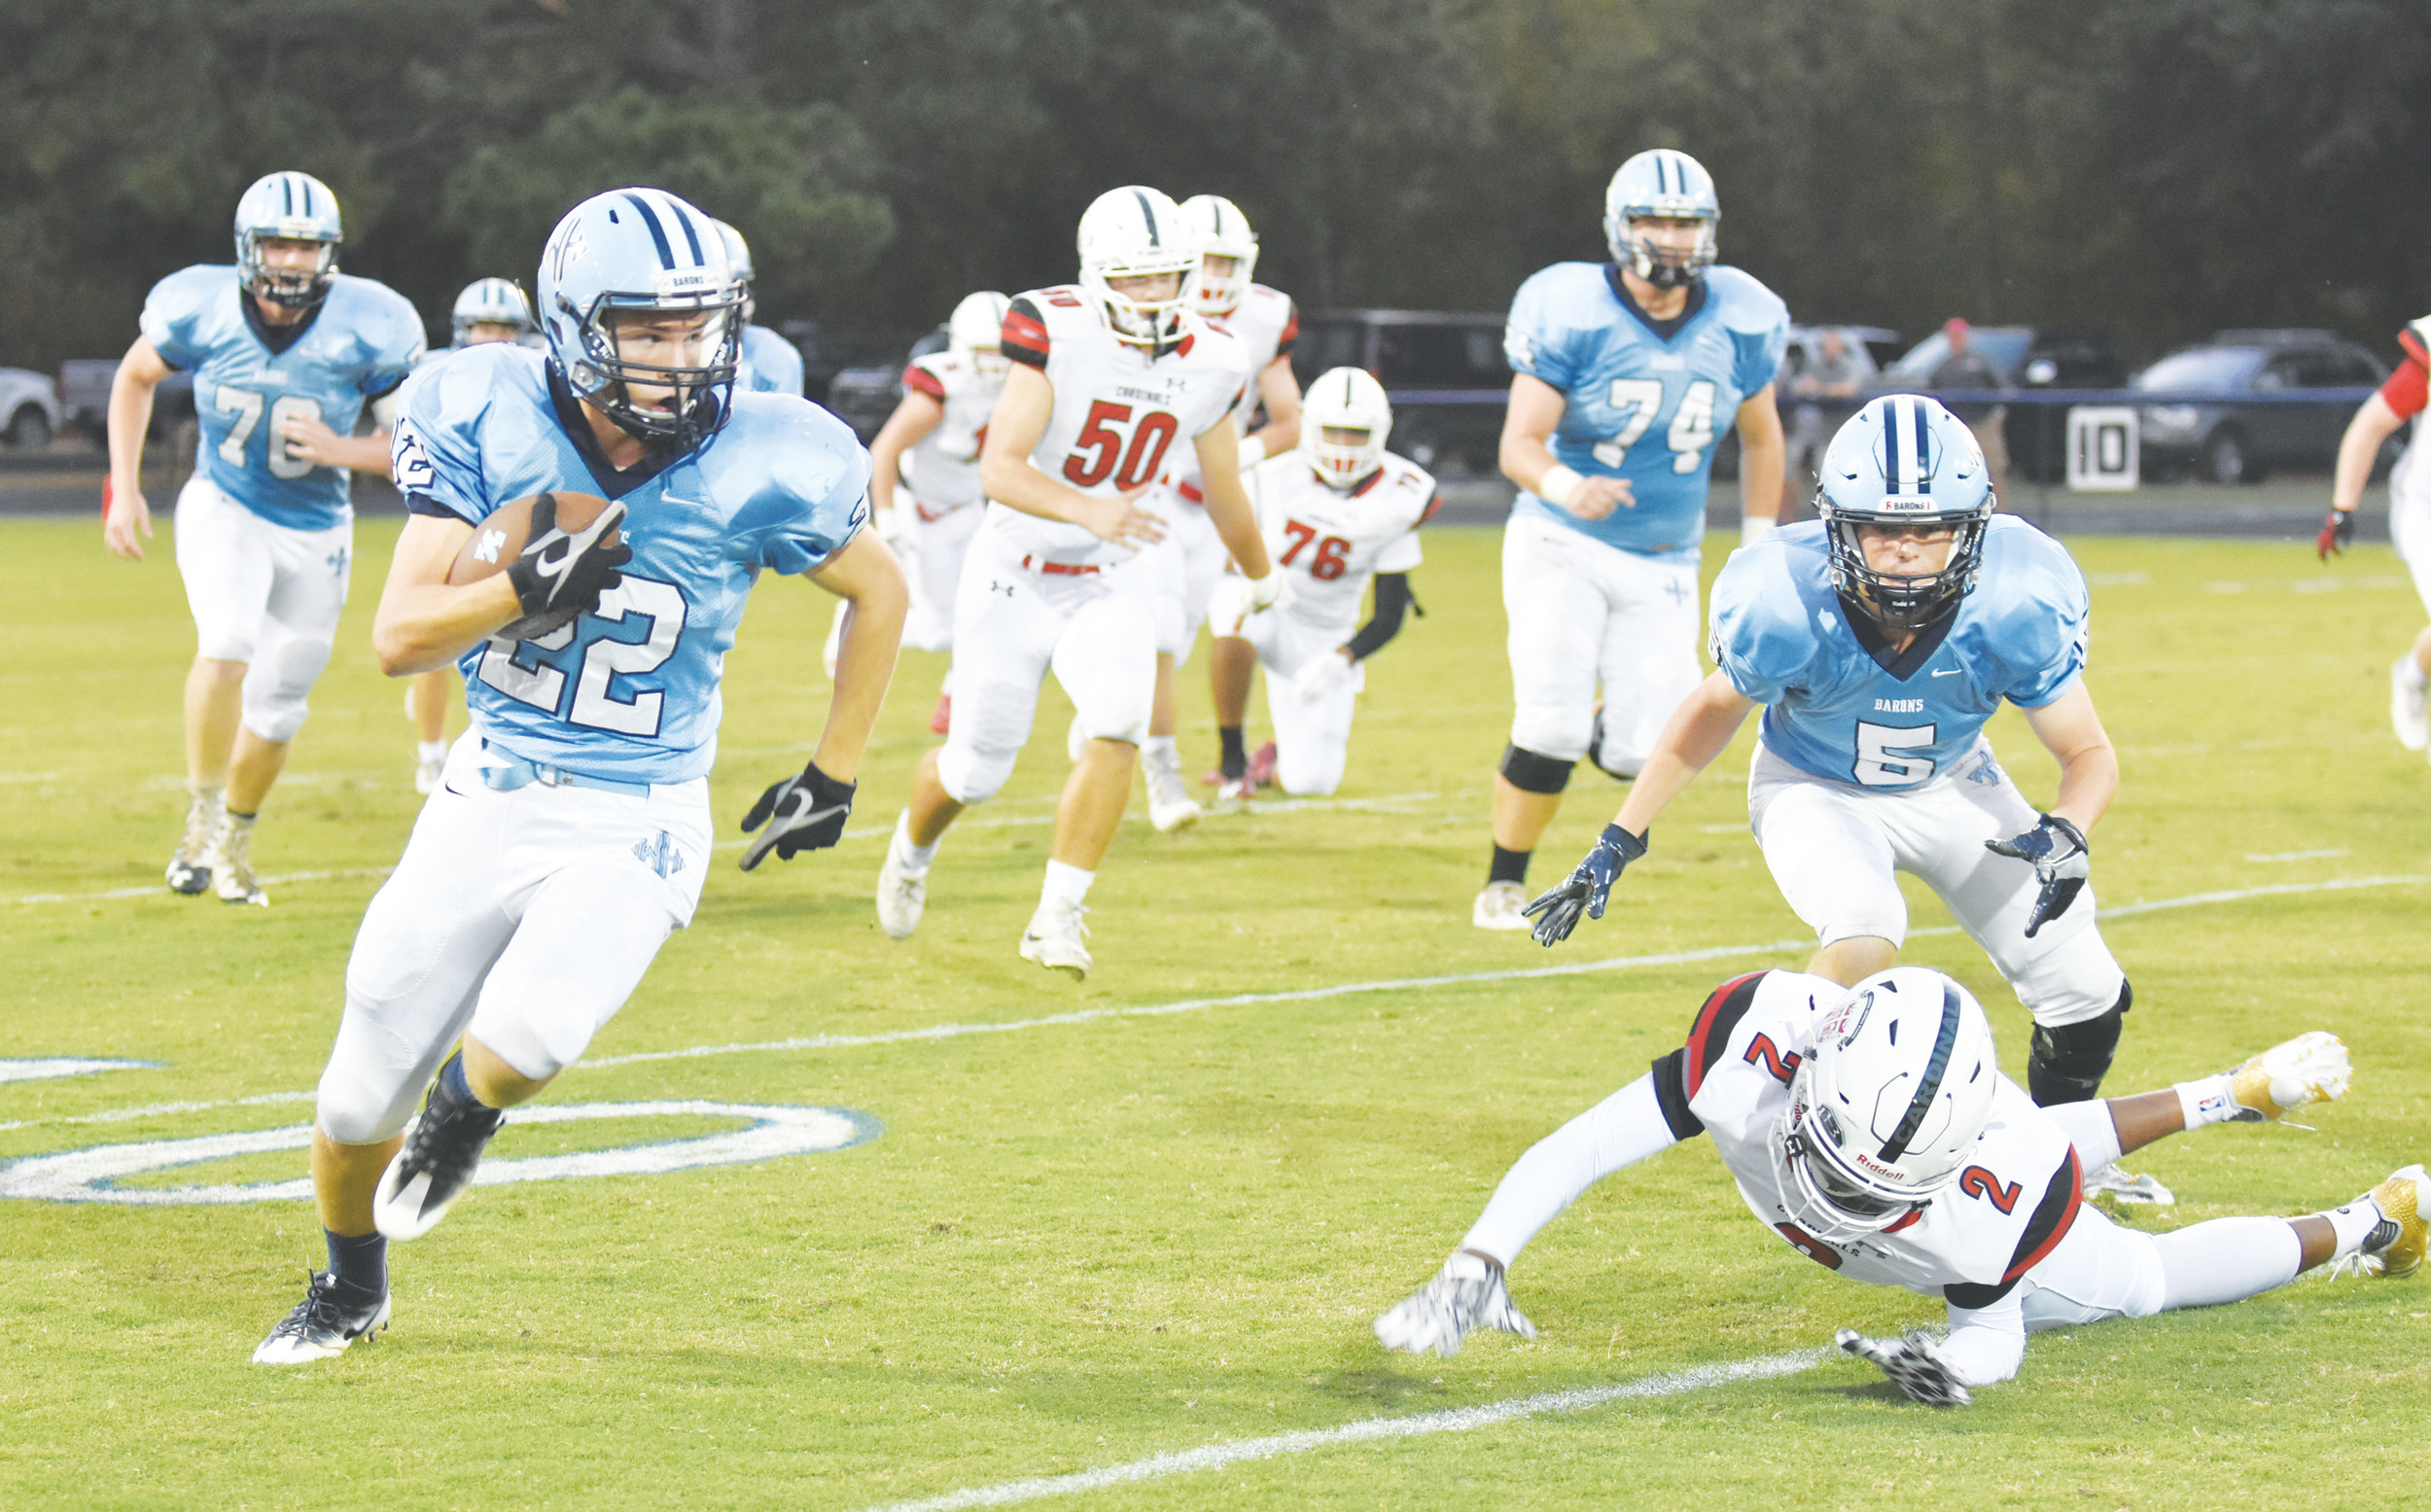 Wilson Hall running back Justin Timmons (22) and the Barons look to continue their recent success today when they travel to Dalzell to face Thomas Sumter Academy at 7:30 p.m.